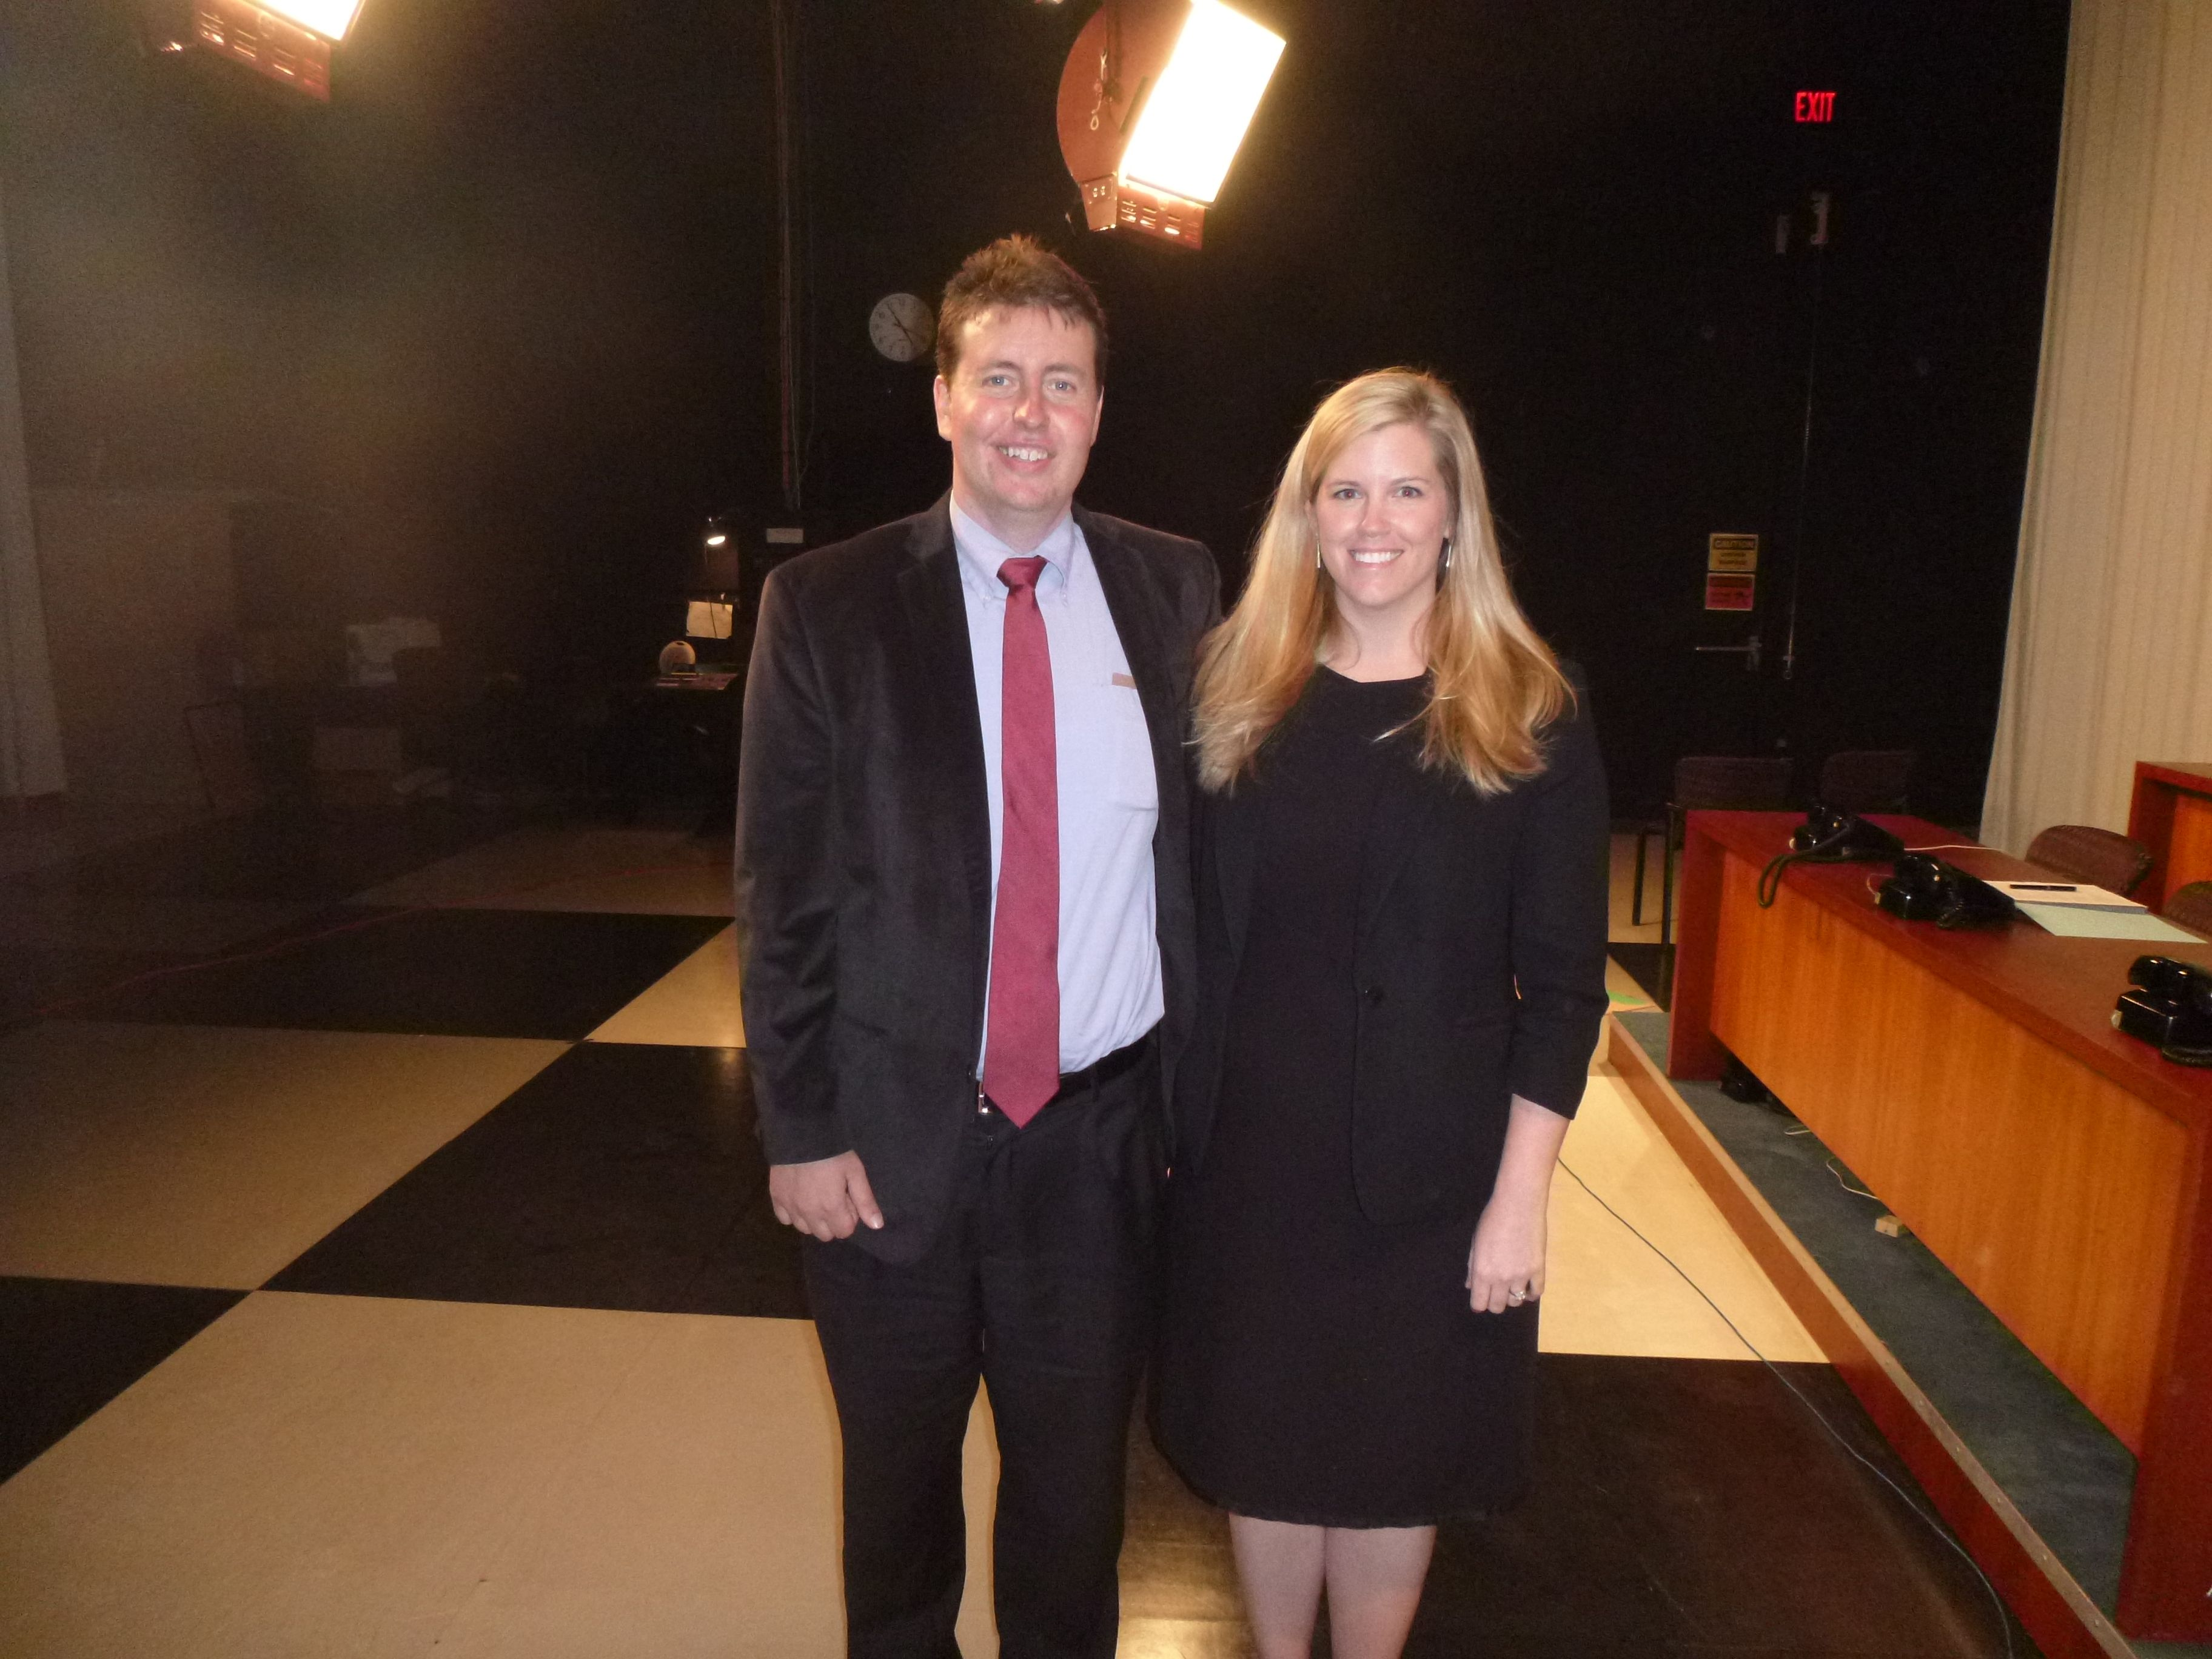 Attorney Evan Guthrie With Katie Mellen Of Nelson Mullins At The South Carolina Bar Ask A Lawyer Event At Wcbd News 2 Studios In Mt New Law Guthrie Law Firm